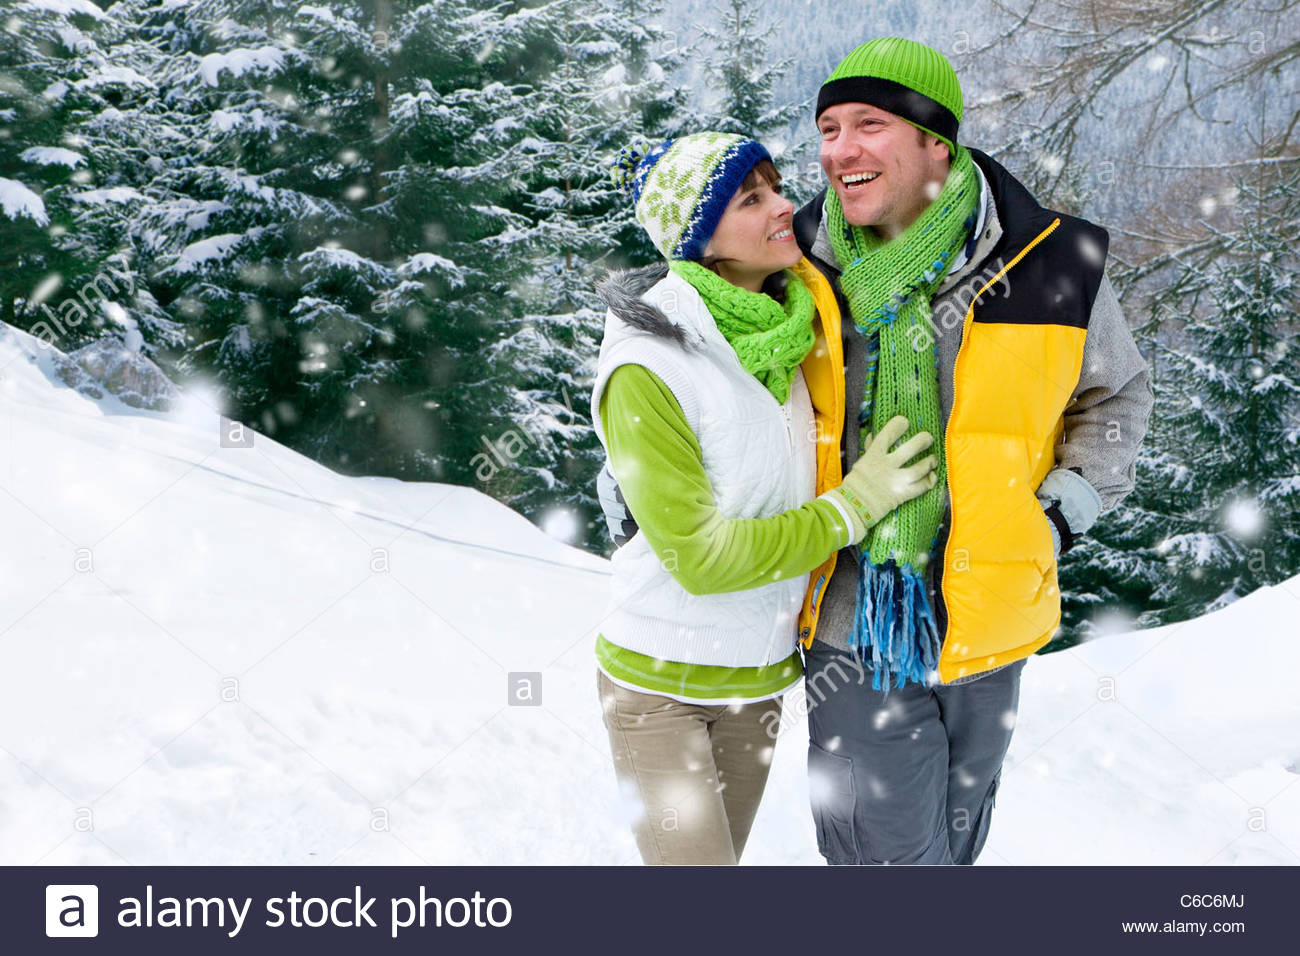 Smiling couple walking in snowy woods - Stock Image